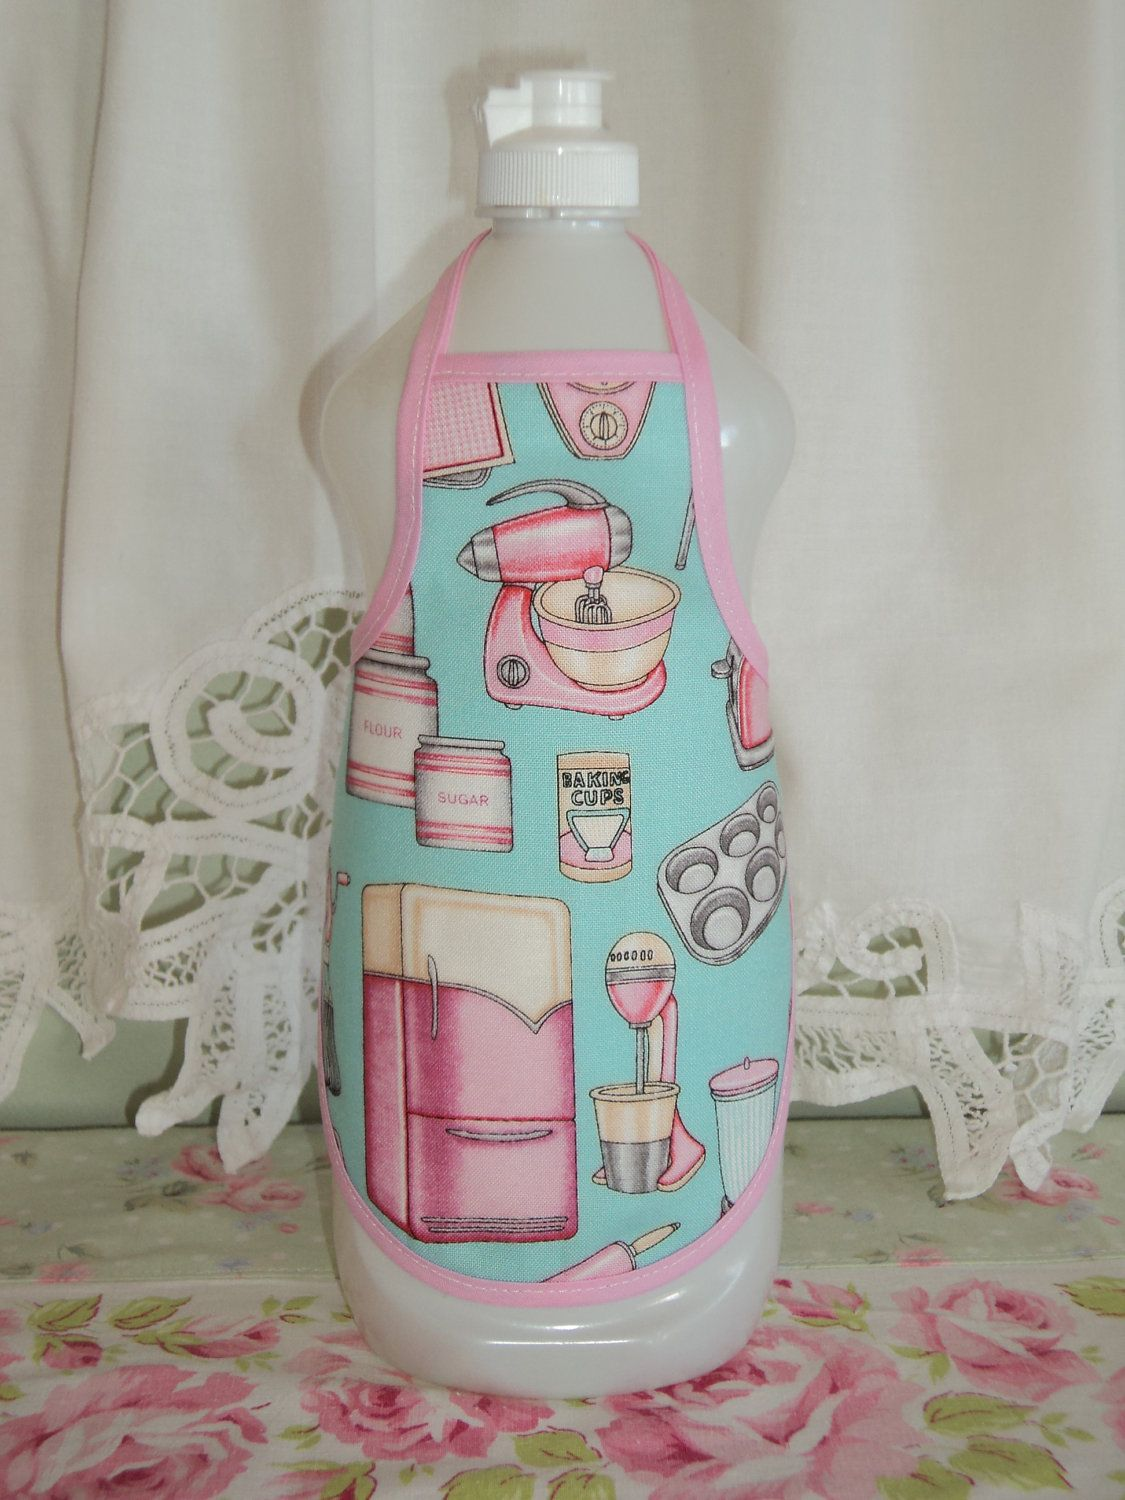 Hand Soap Bottle Holder Image Detail For This Cute Little Apron Will Fit Any